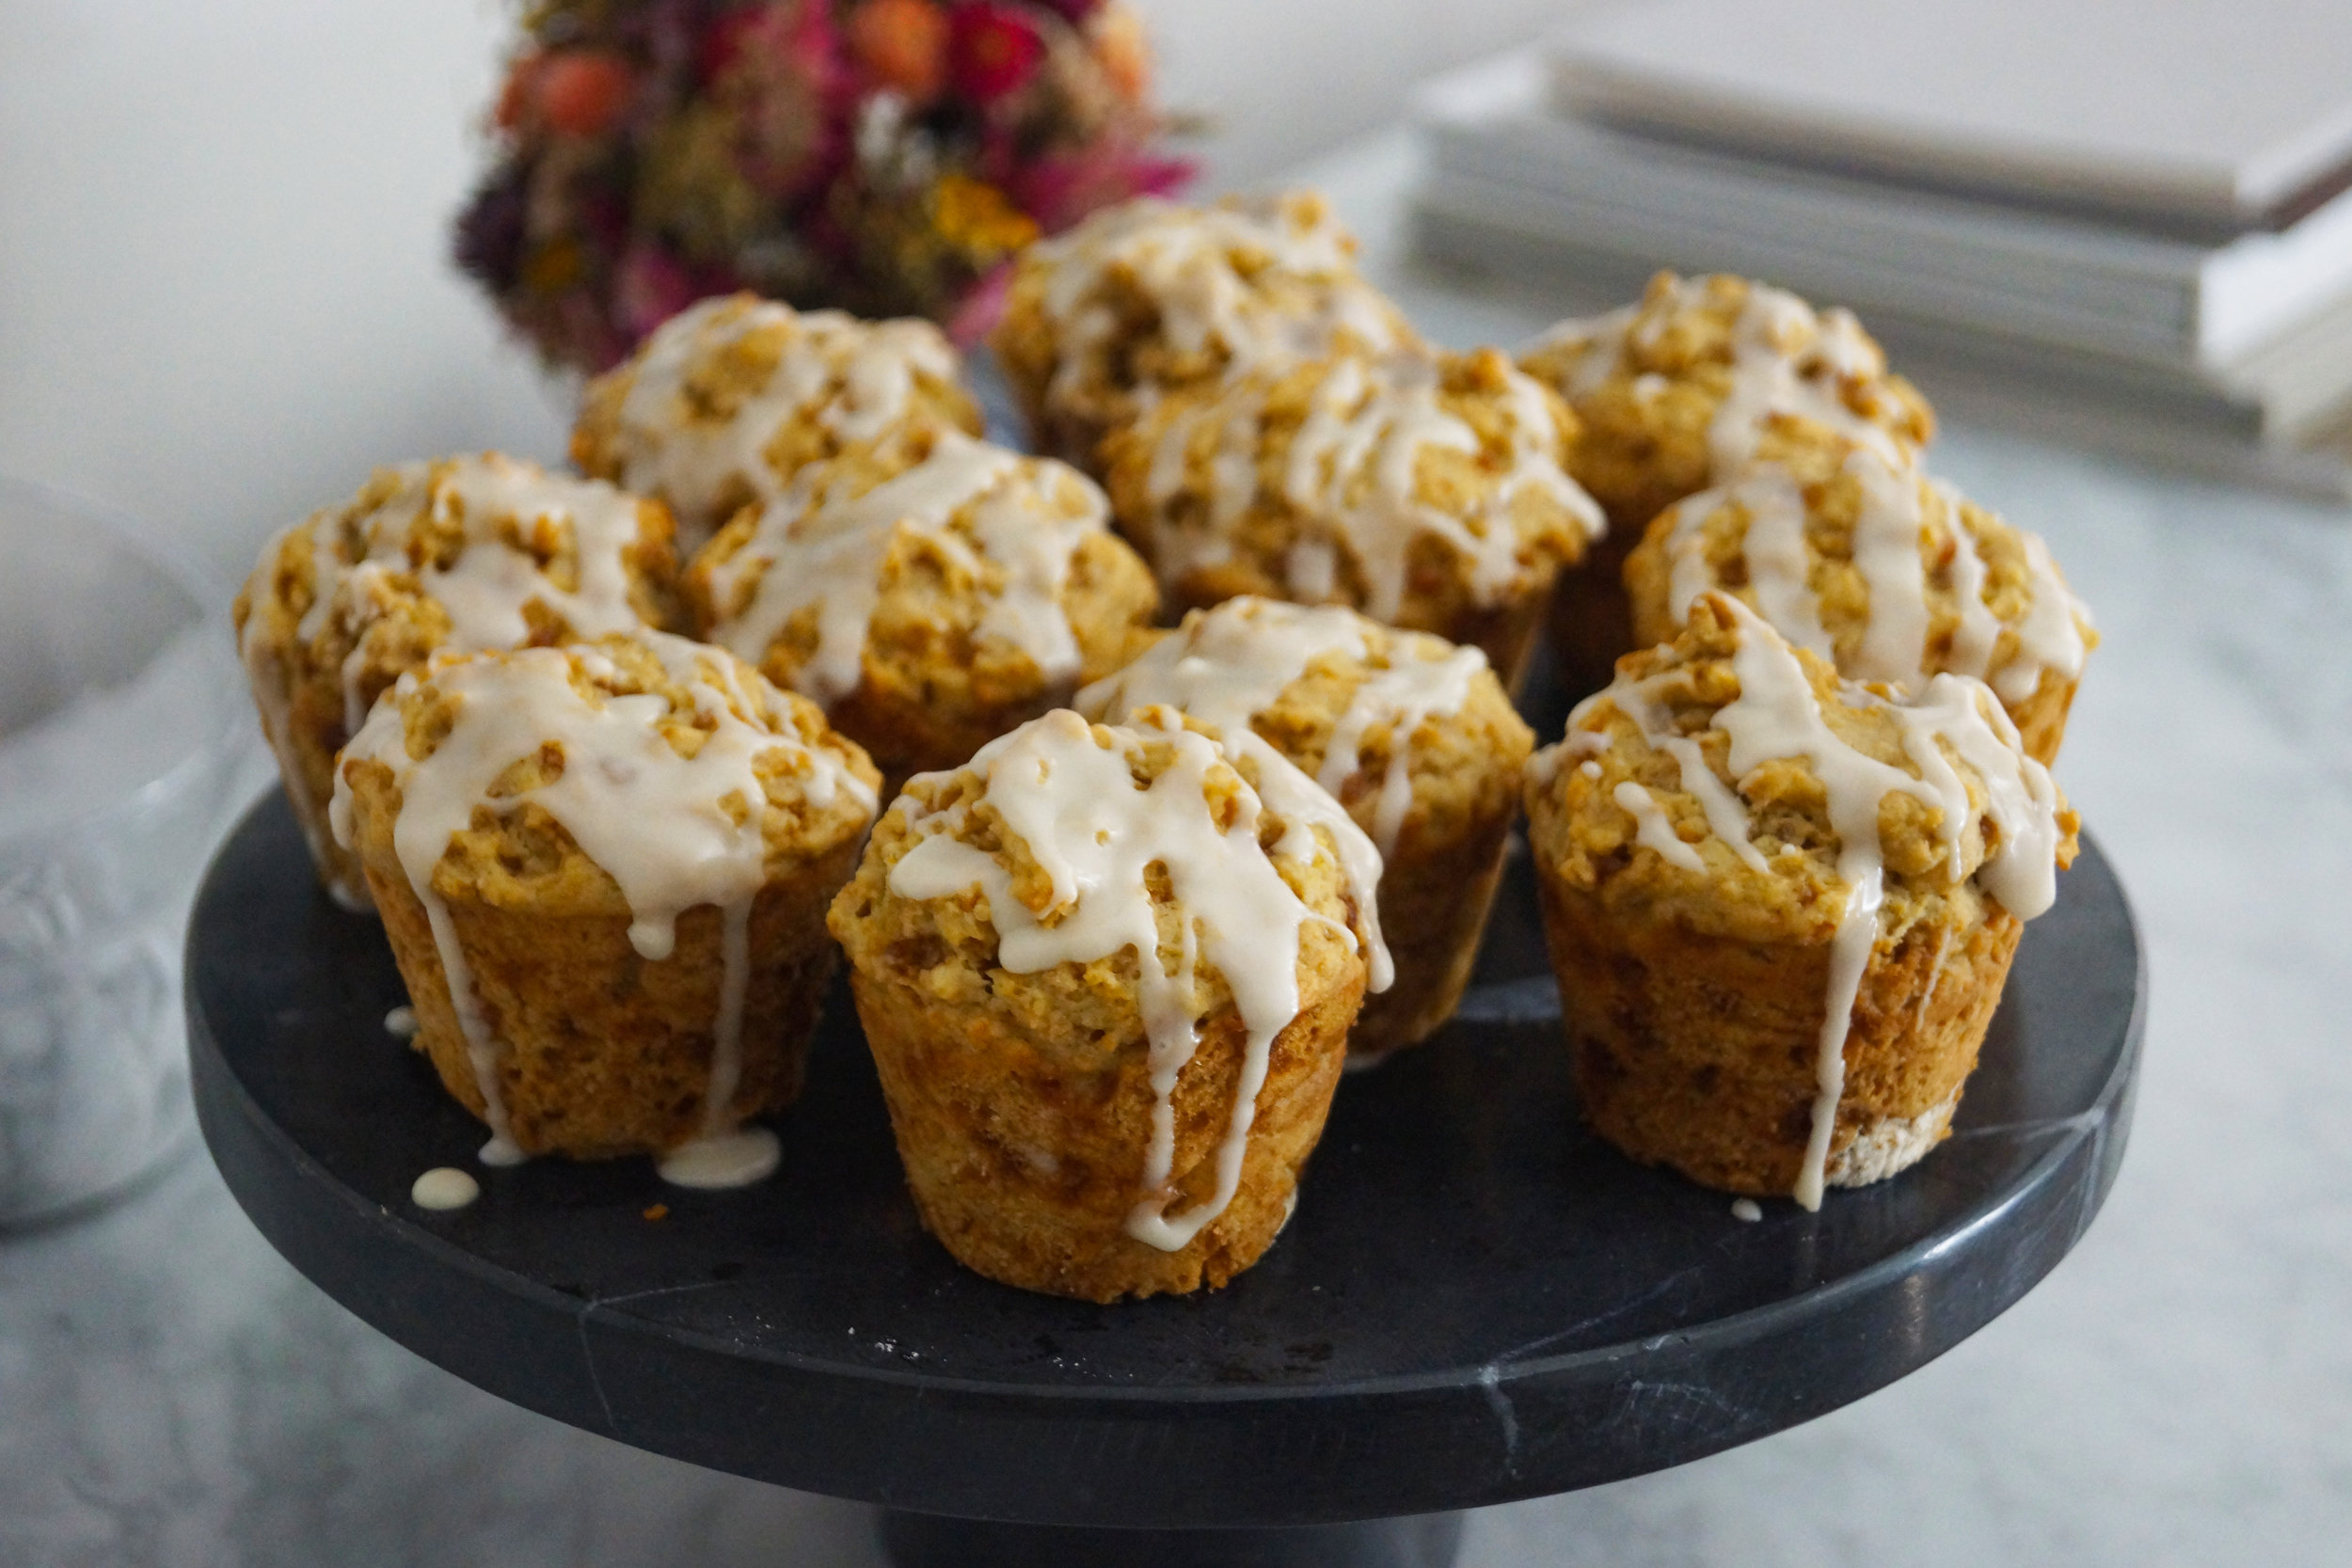 These vegan lemon cake muffins are made with avocado oil and cashew yogurt.